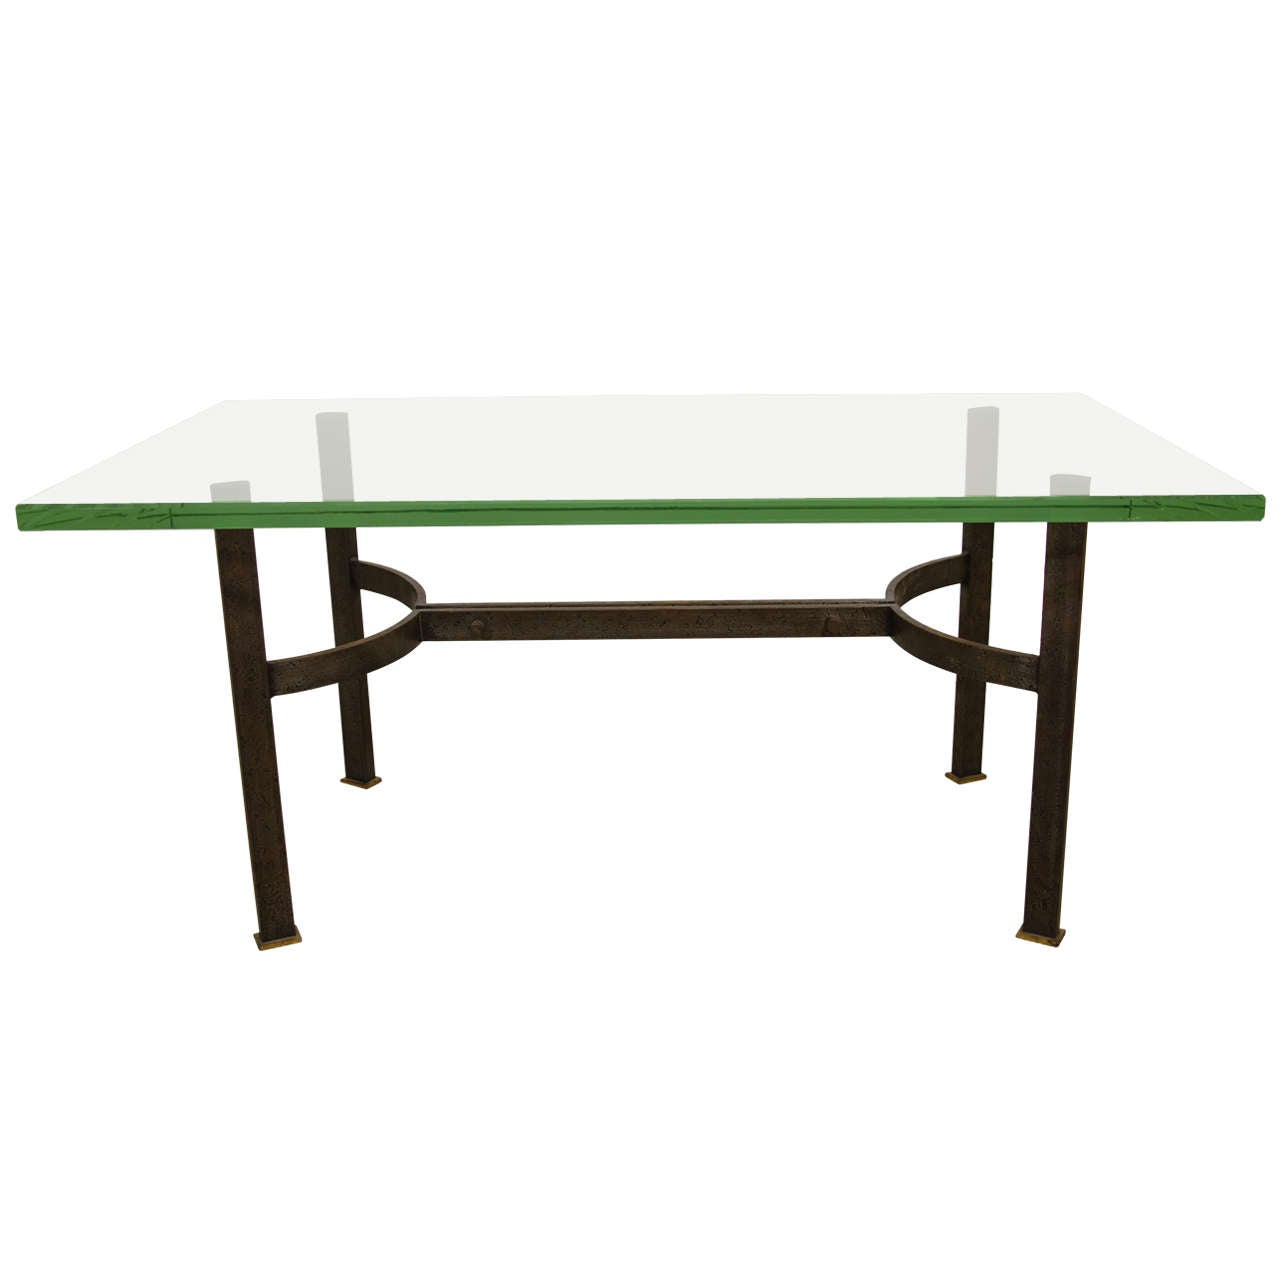 French bronze iron and glass coffee table c 1960 s at for French glass coffee table